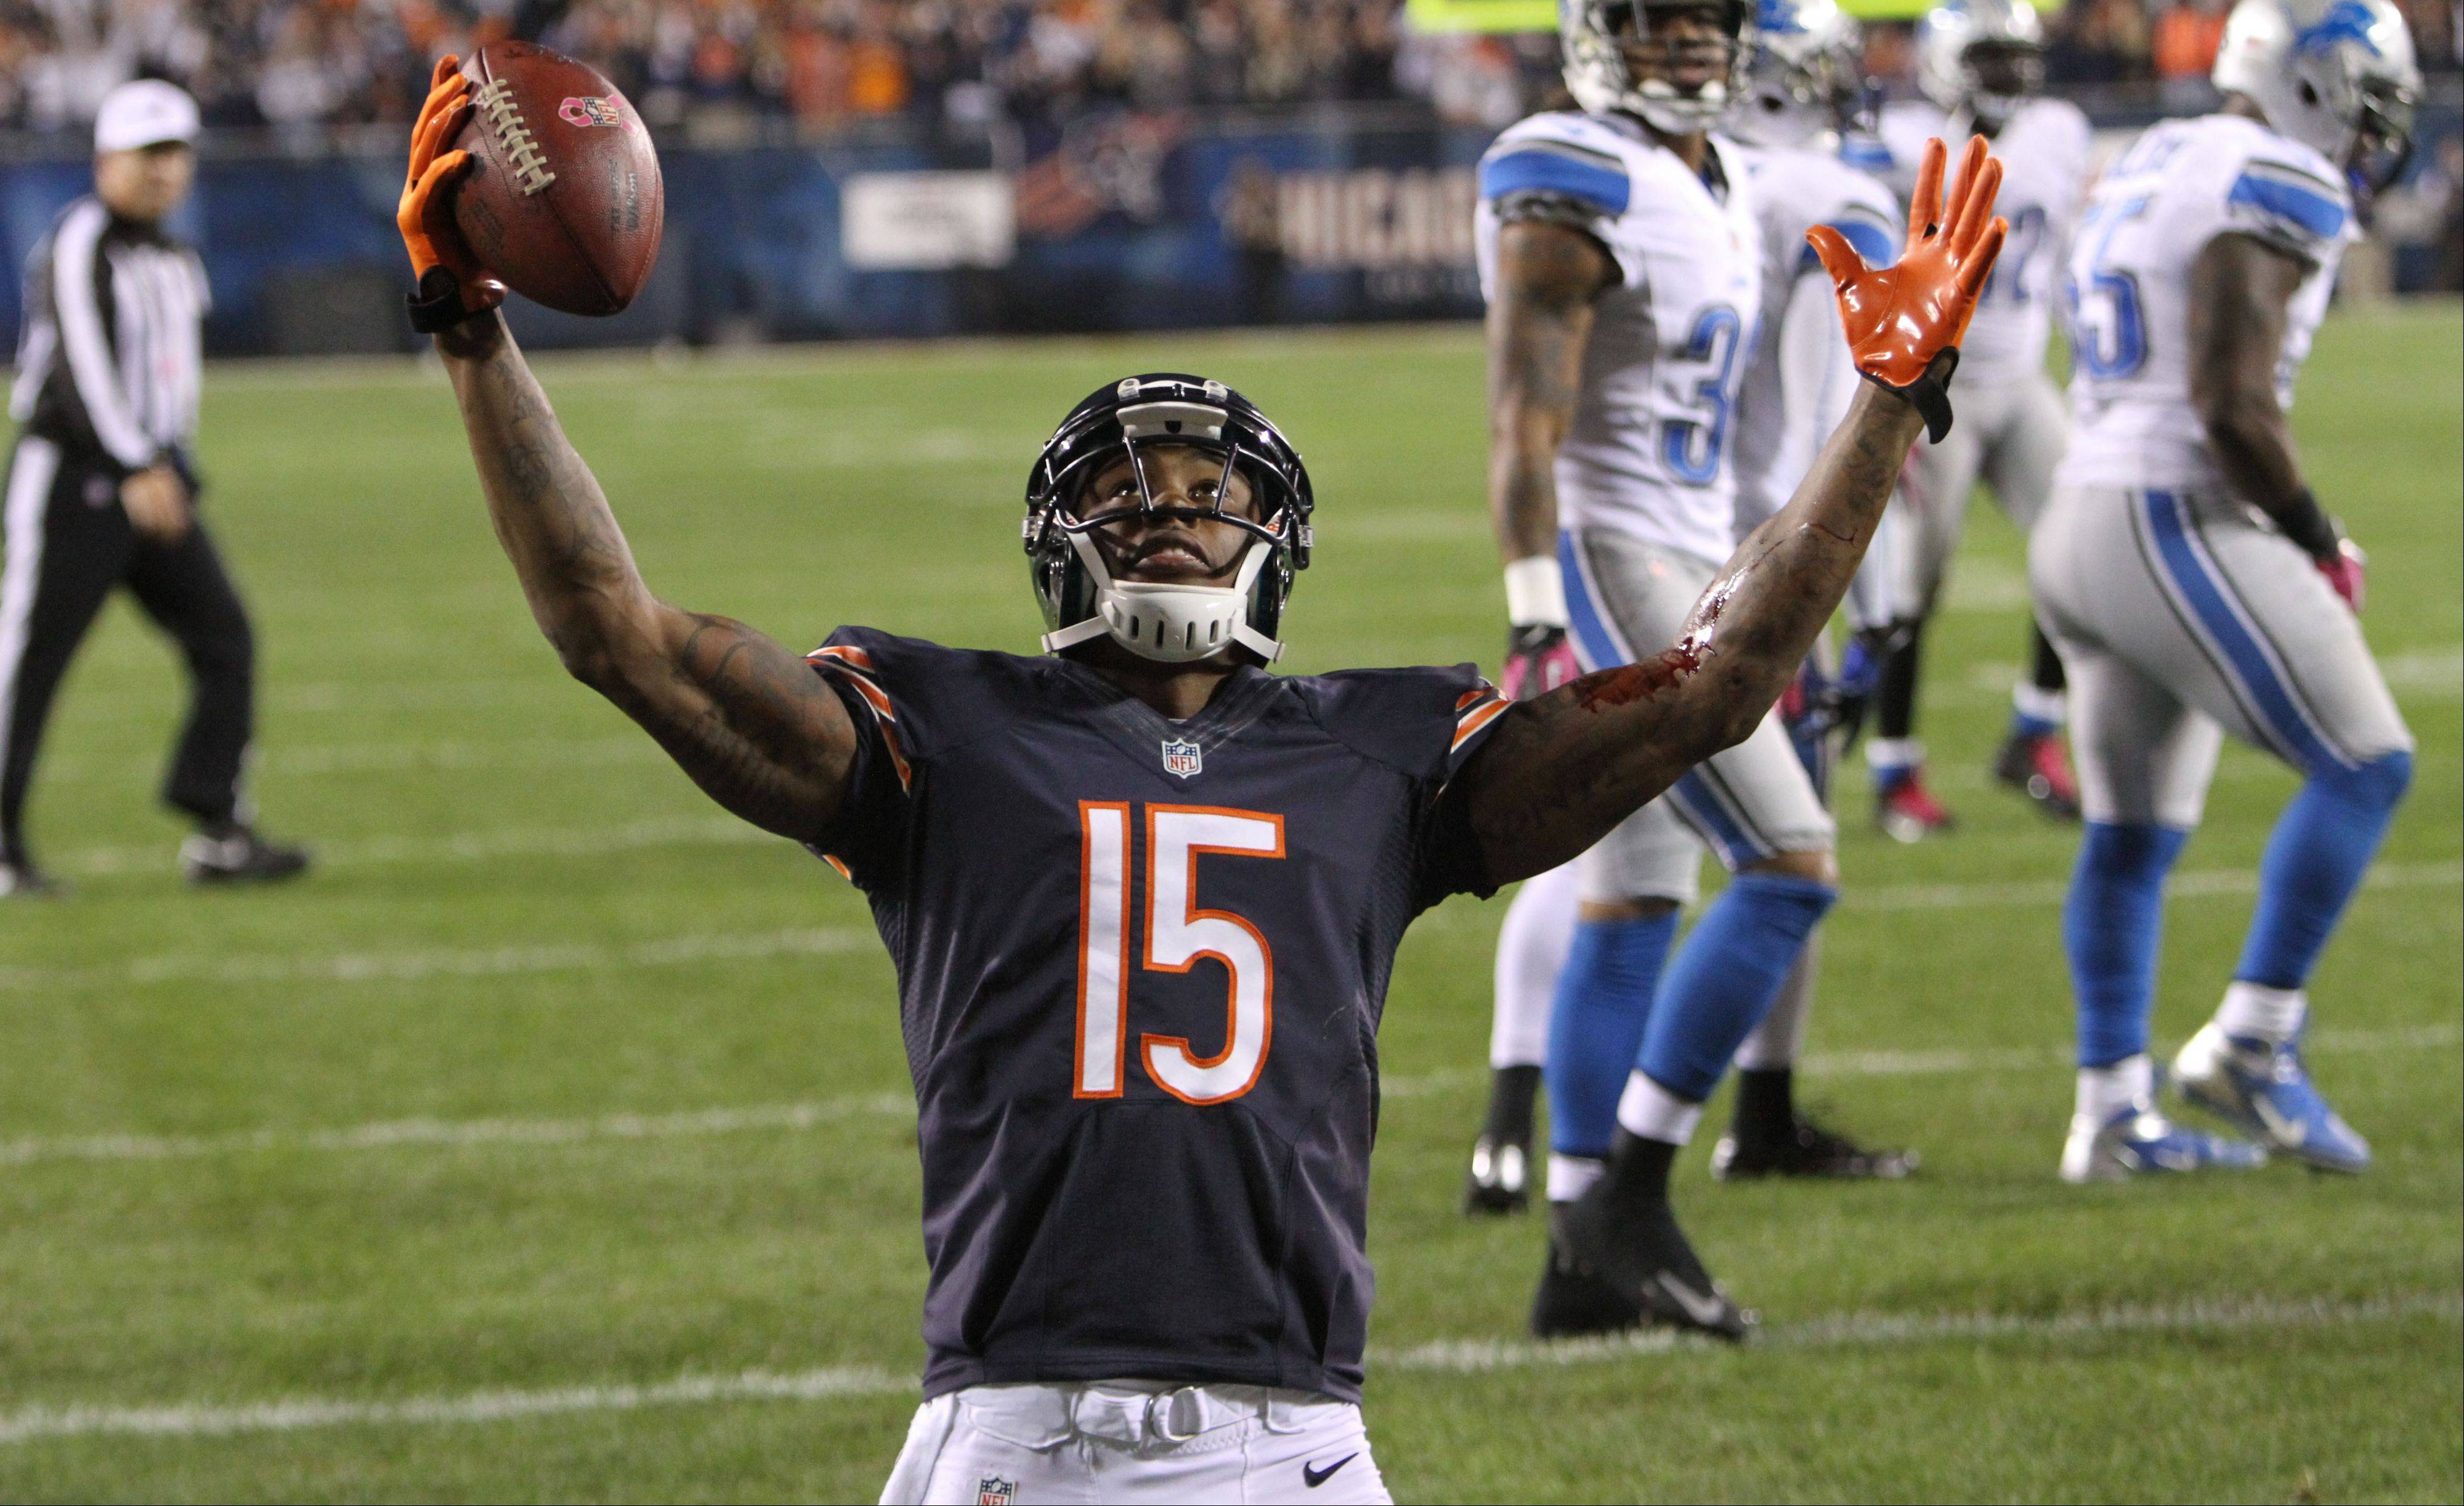 Steve Lundy/slundy@dailyherald.com � Chicago Bears wide receiver Brandon Marshall celebrates his first quarter touchdown during their game against the Detroit Lions Monday night at Soldier Field in Chicago.